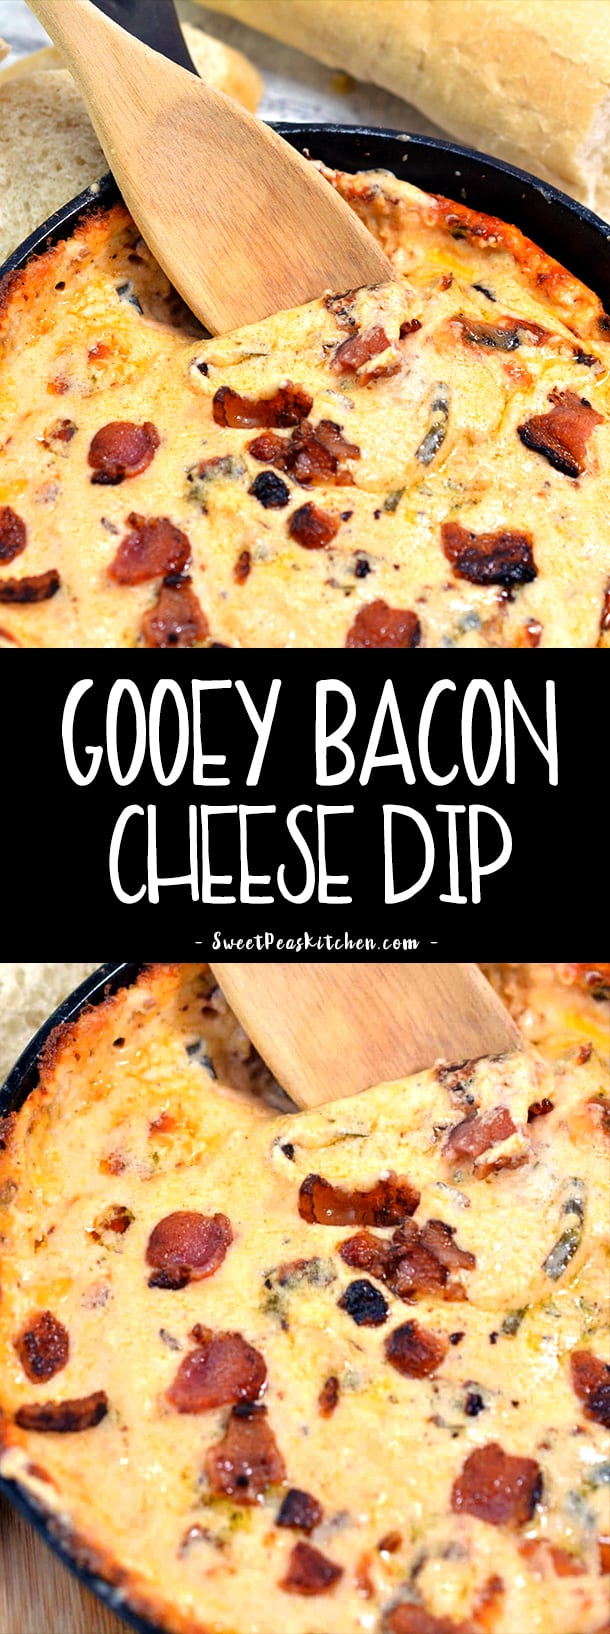 Gooey Bacon Cheese Dip Recipe